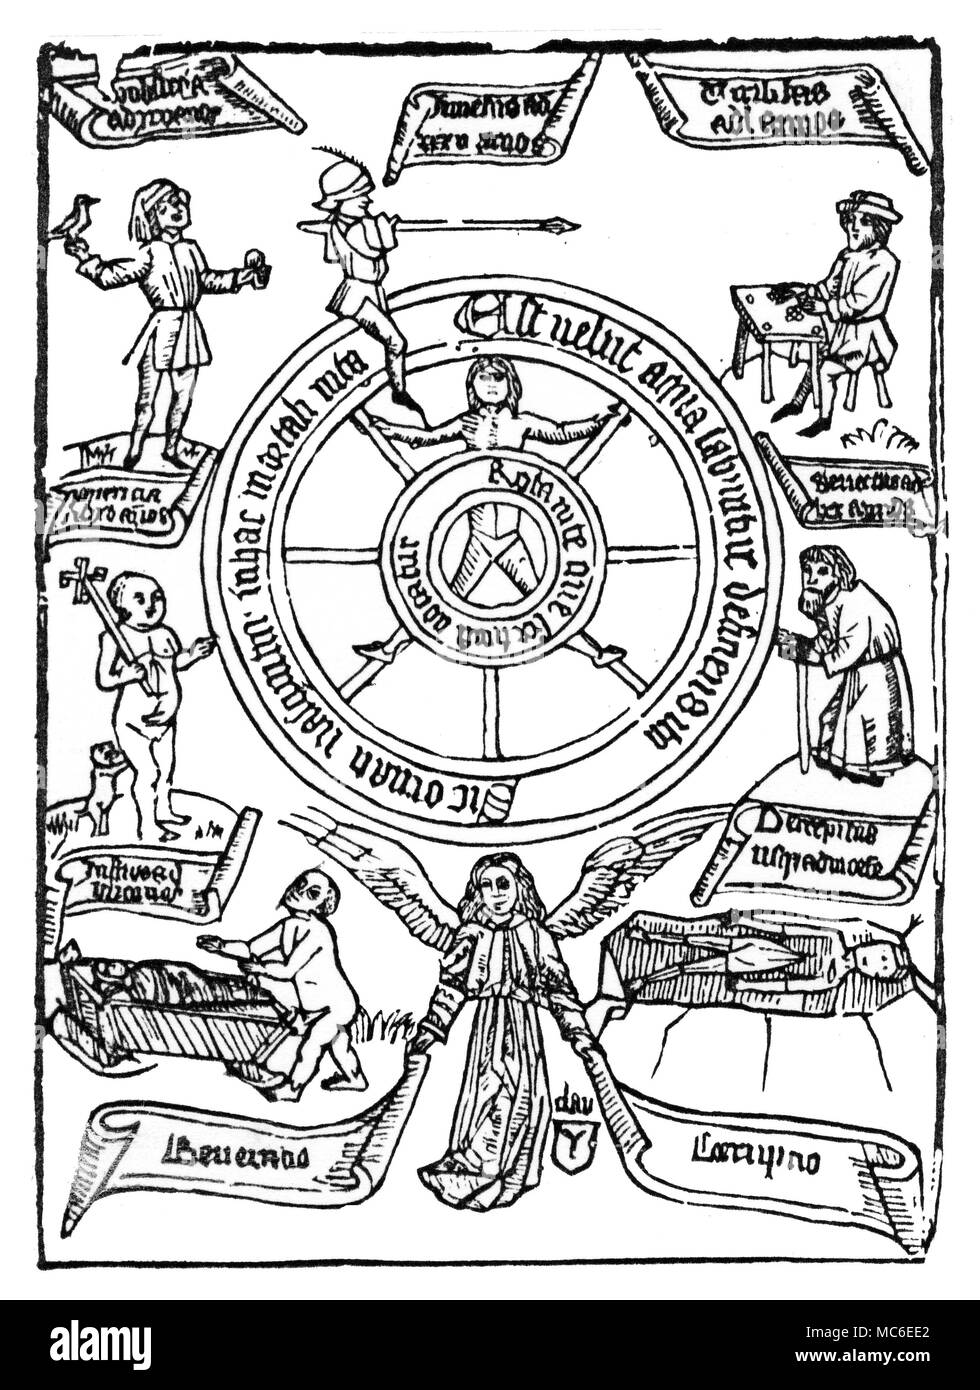 ASTROLOGY - SEVEN AGES OF MAN Nineteenth century drawing